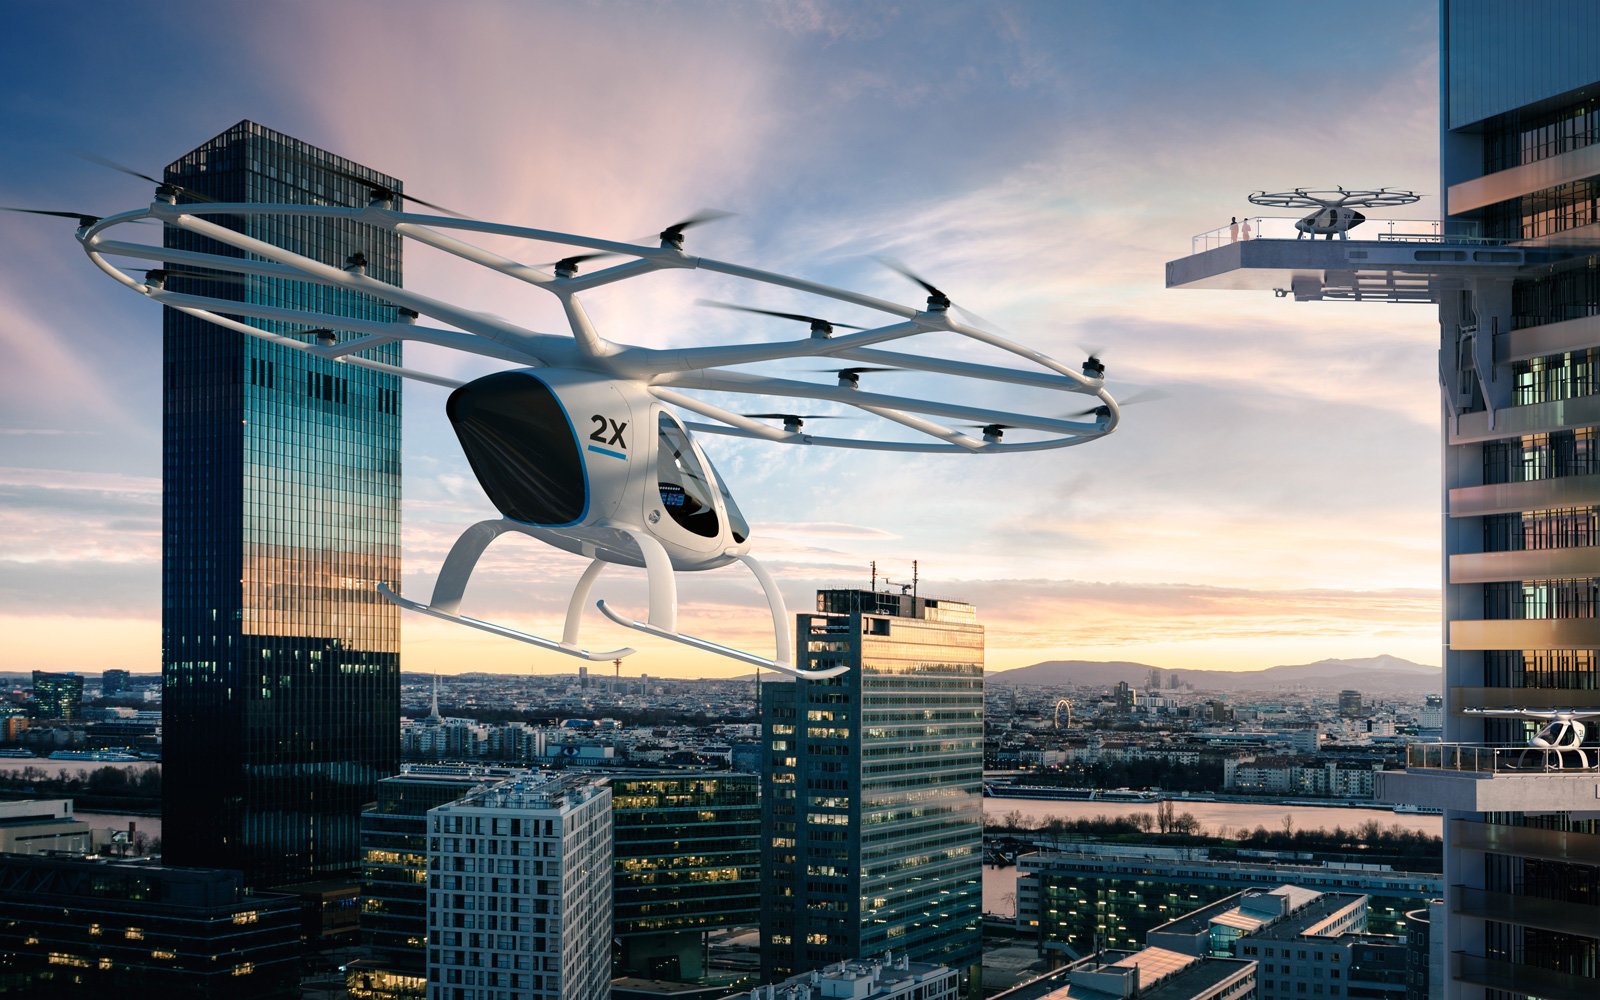 The Volocopter.